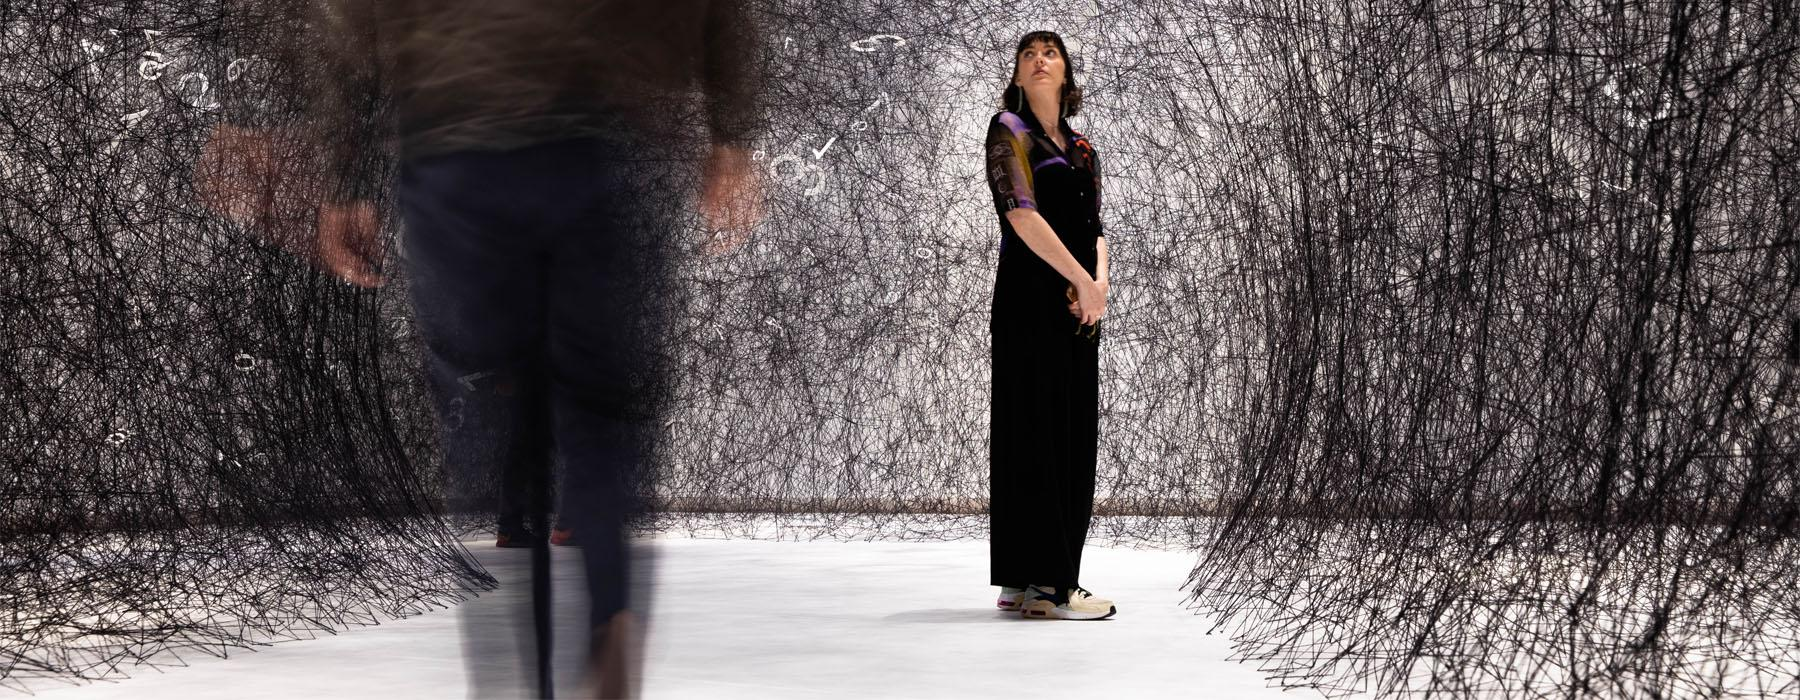 A woman stands amid the artwork, a network of black strands of wool